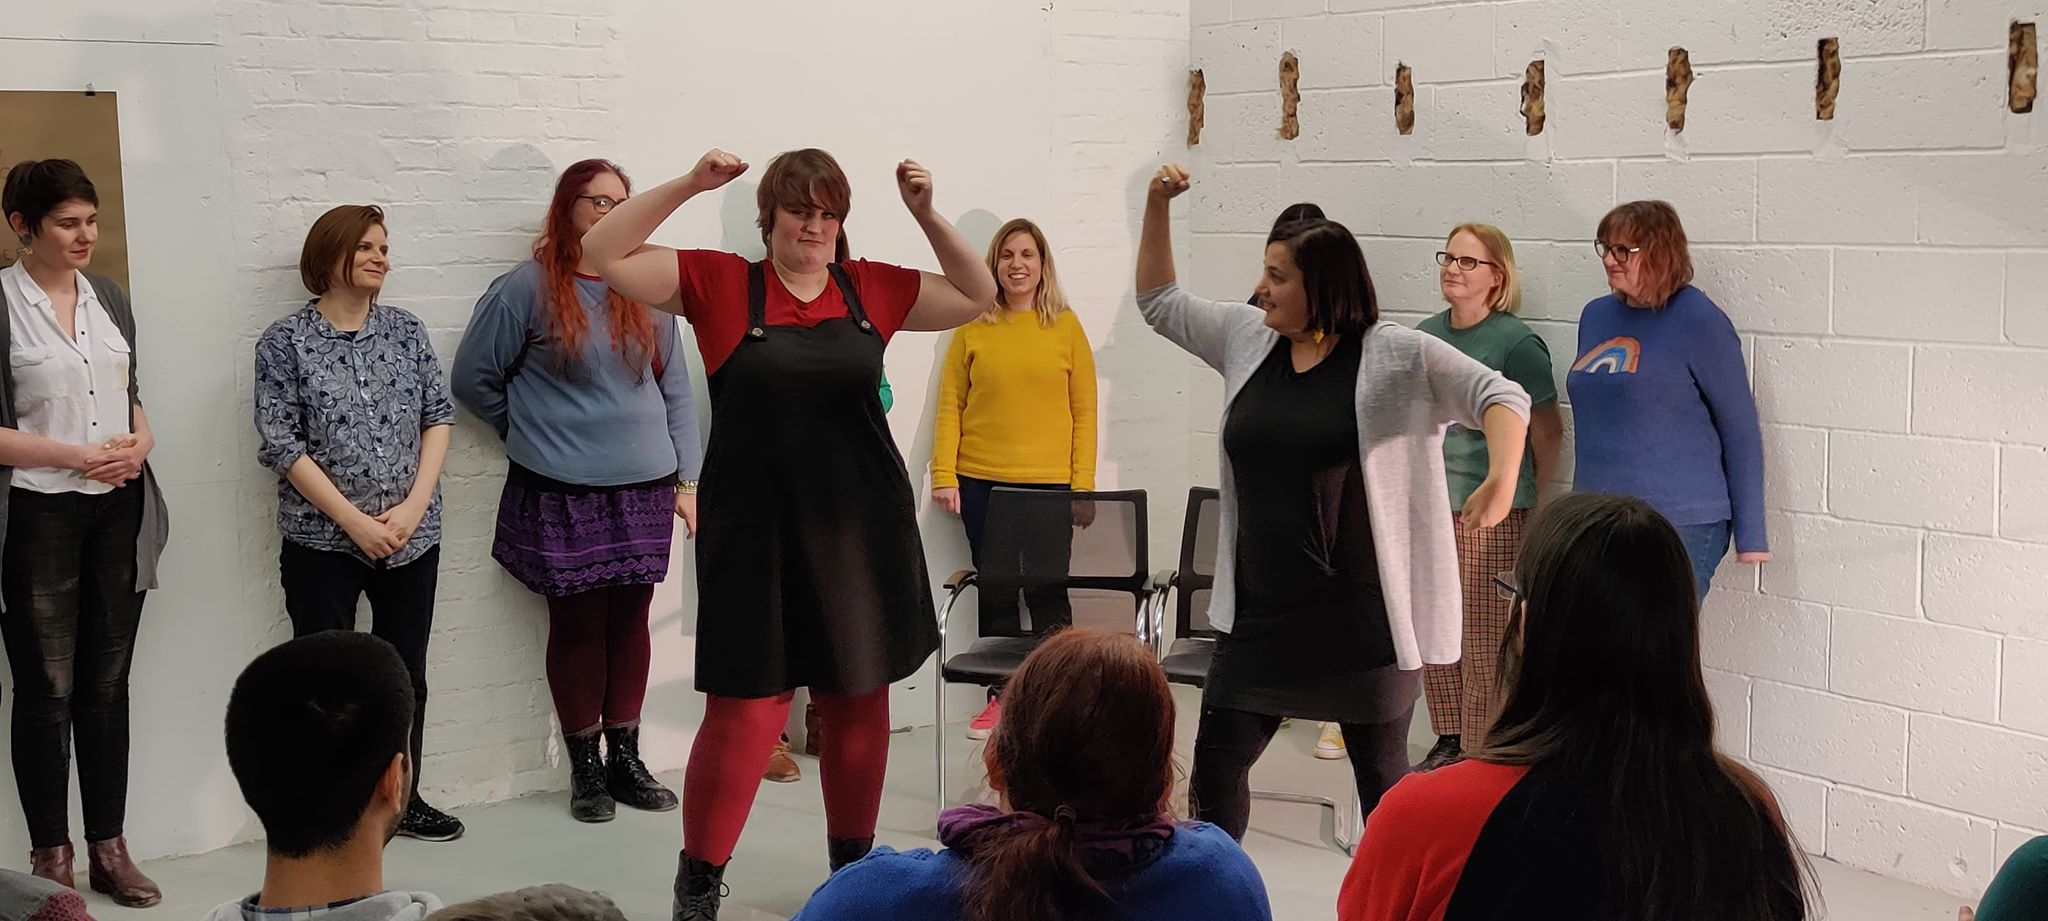 A group of women are assembled against a white wall. Two women are front and centre making strong arm movements that look like one is shaking a fist and the other is shaking two fists. They look midly annoyed. The rest of the women stand against the wall watching the action unfold. There are some audience members seated in the foreground and we see the back of their heads watching the two women shaking their fists.